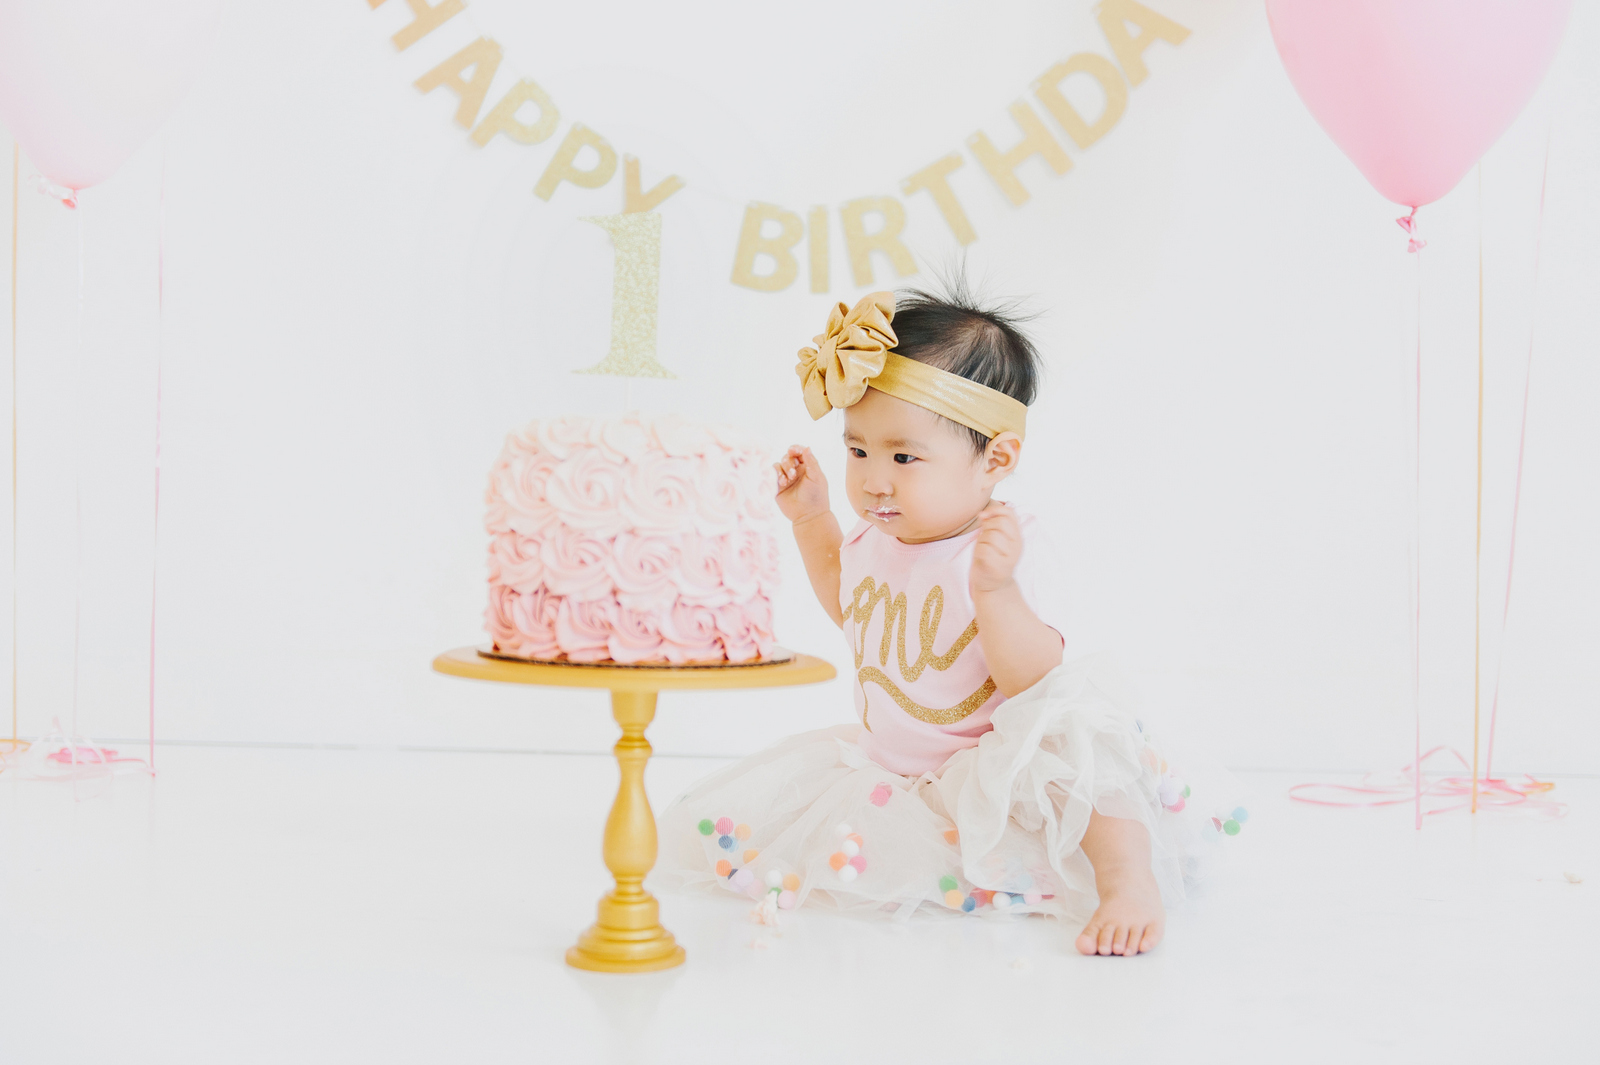 Vivian's 1st Birthday Cake Smash